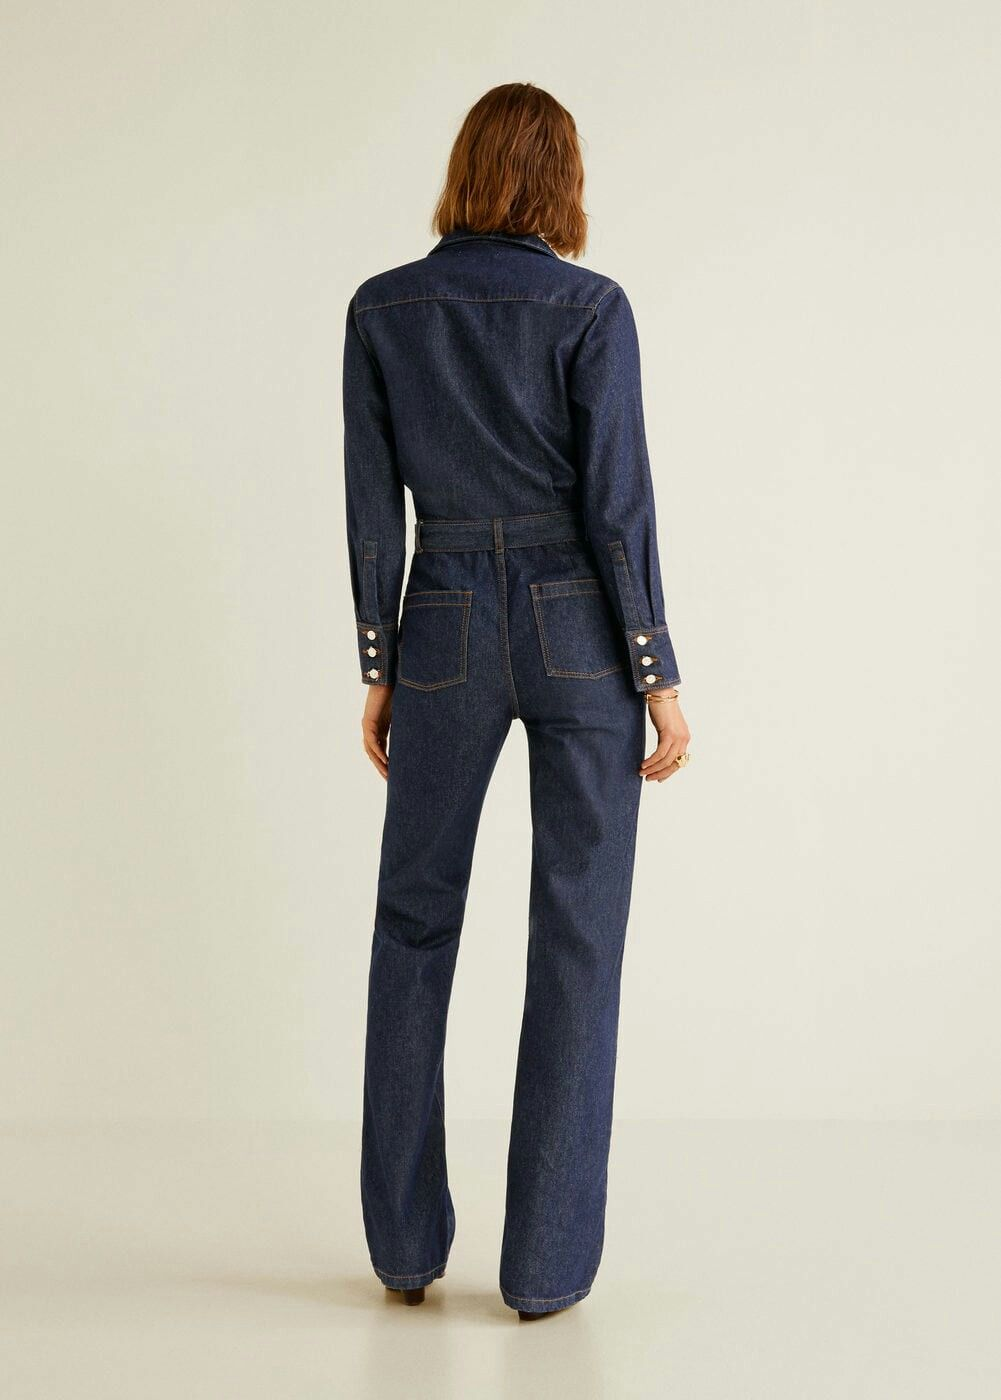 Verwonderend Mango denim jumpsuit | Mango ☆ 2017 ~ 2018 ~ 2019 in 2019 | Denim SP-43